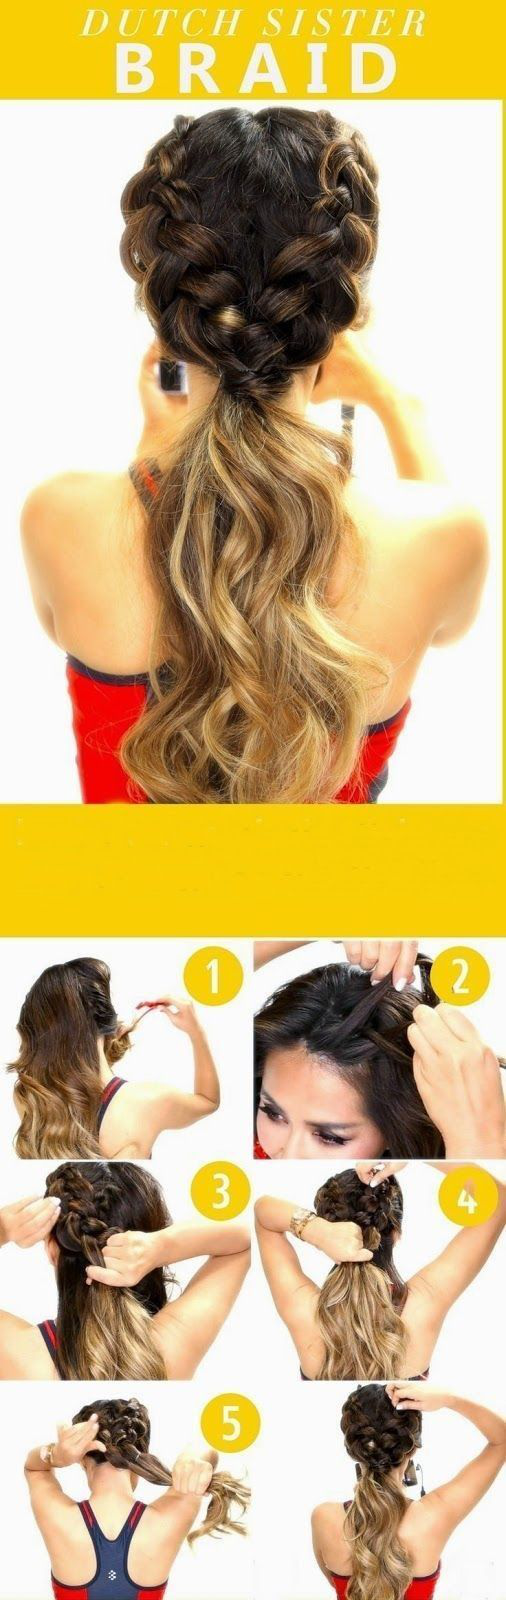 Cool supereasy trendy hairstyles for school quick easy cute